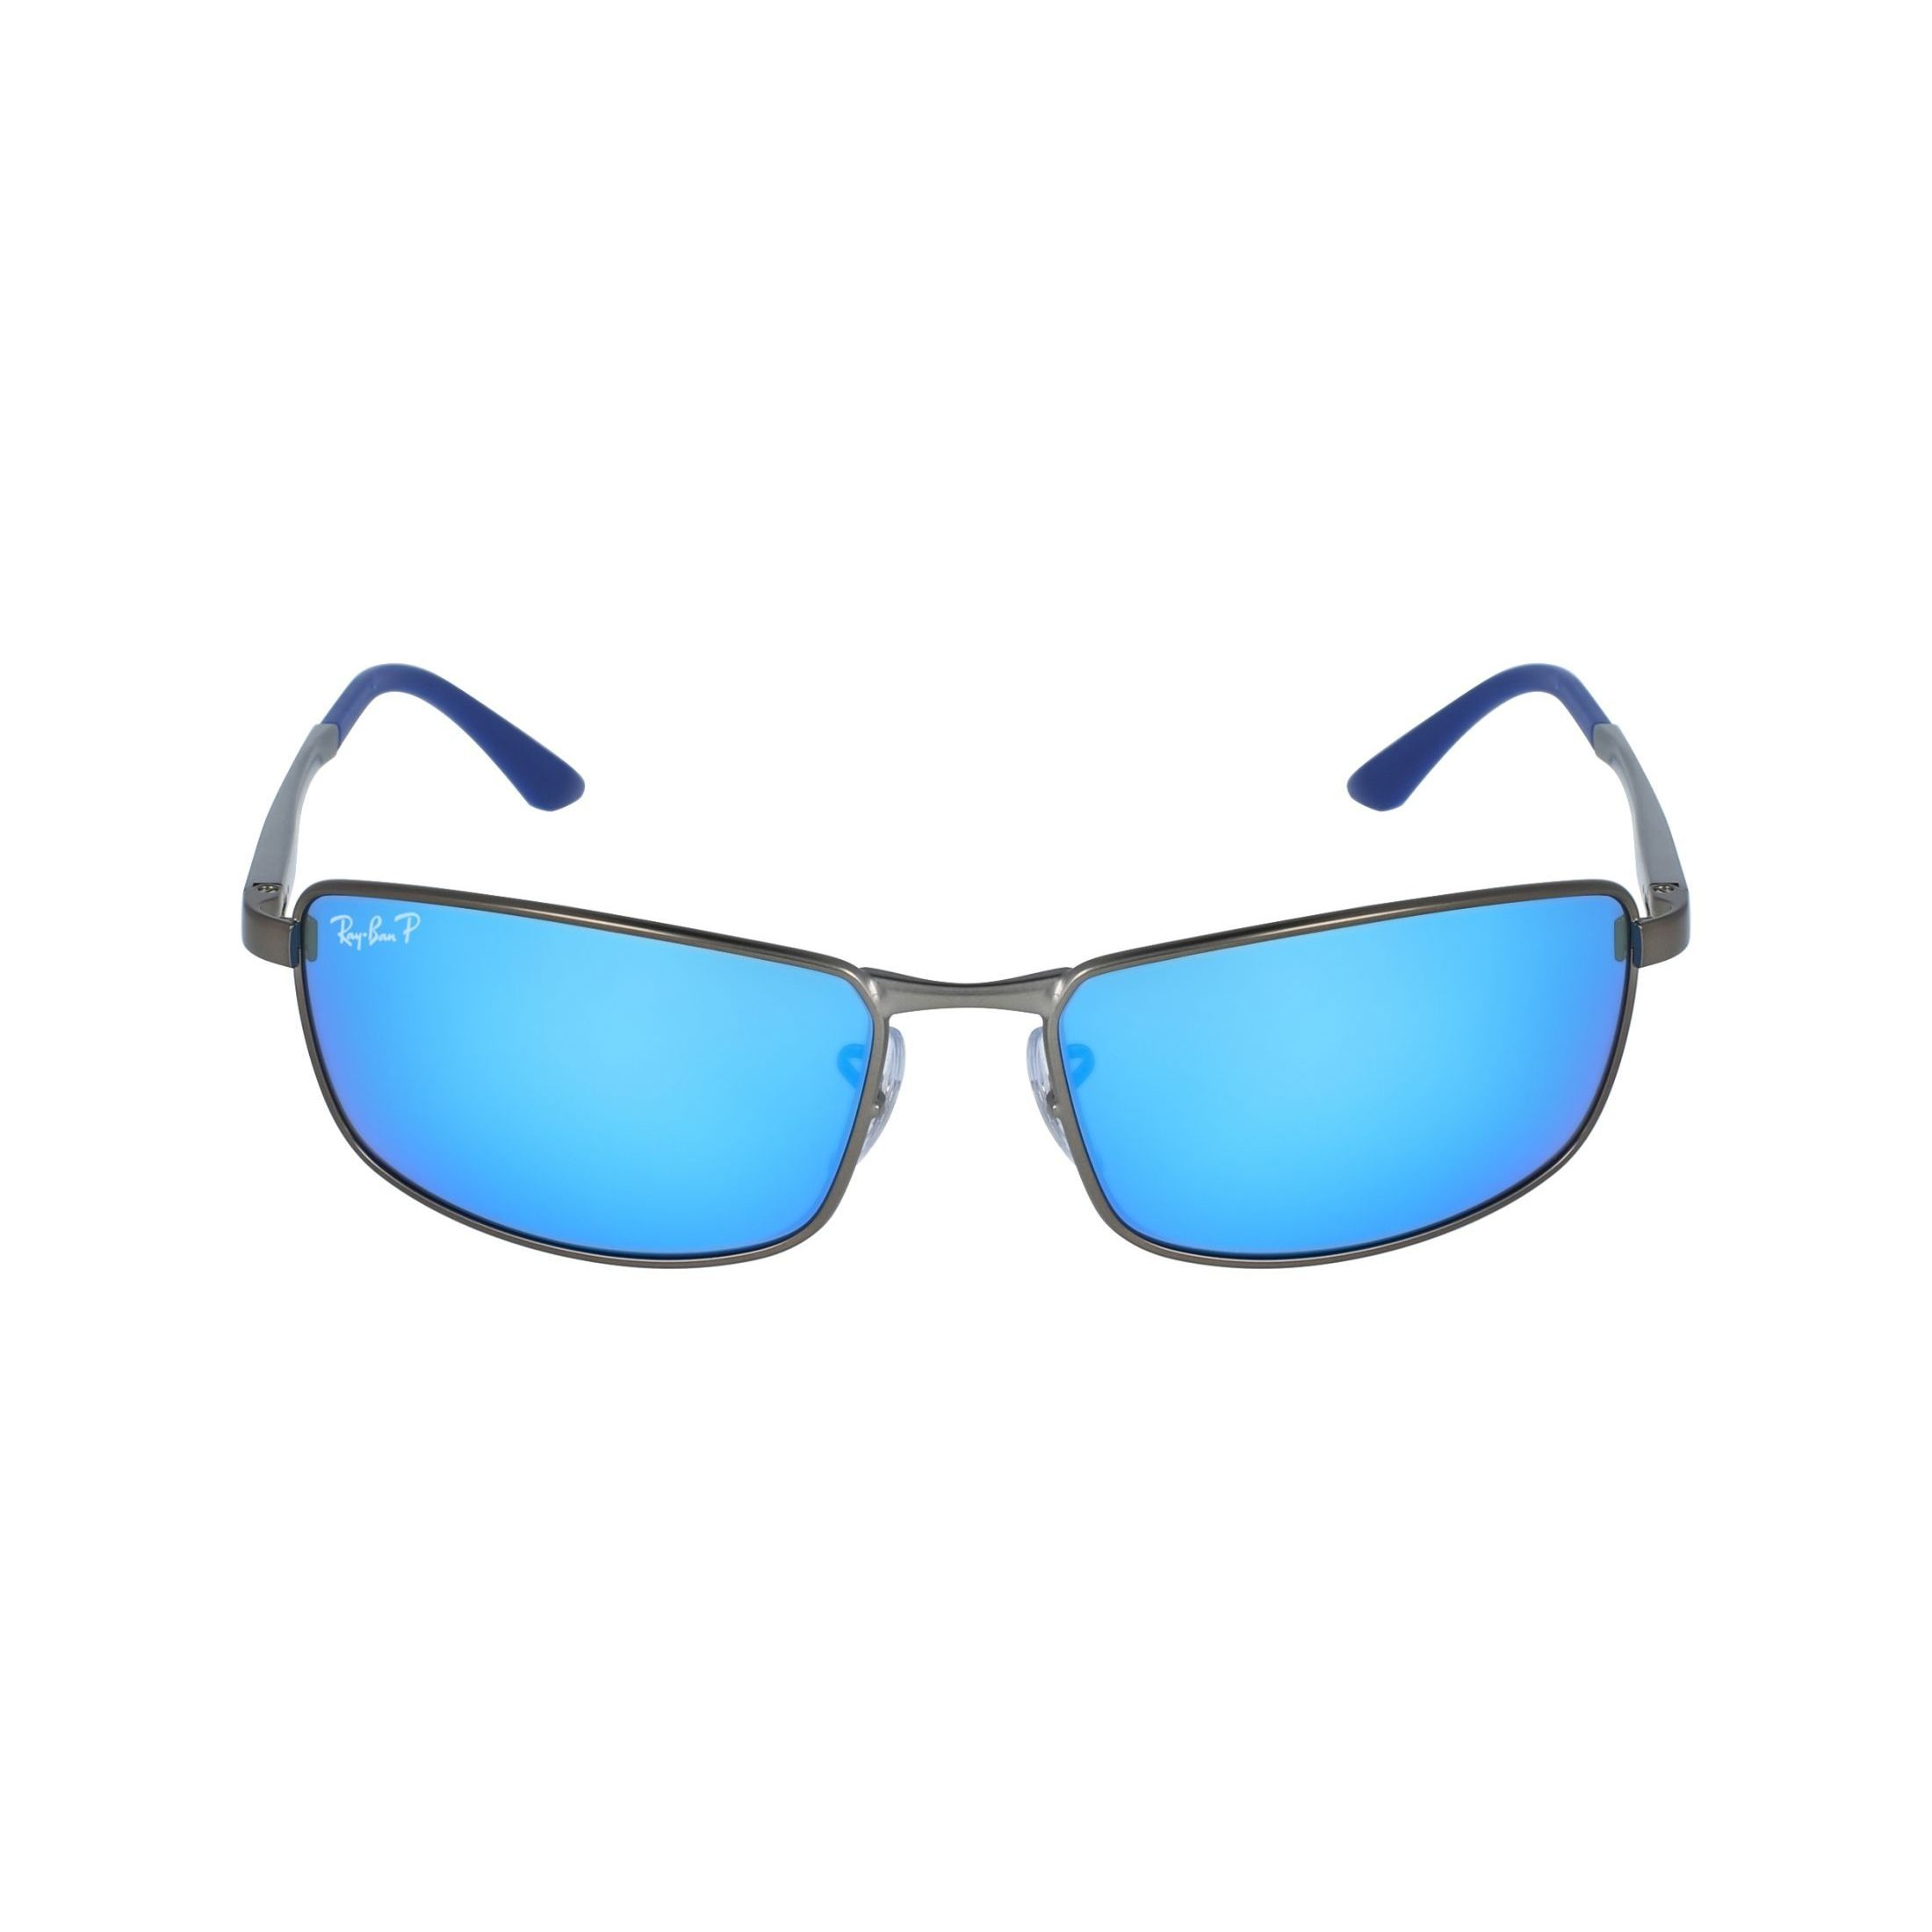 9249d1ae80 Shop Ray-Ban Men s RB3498 029 9R Gunmetal Frame Polarized Blue Flash 61 mm  Lens Sunglasses - Free Shipping Today - Overstock - 16740916